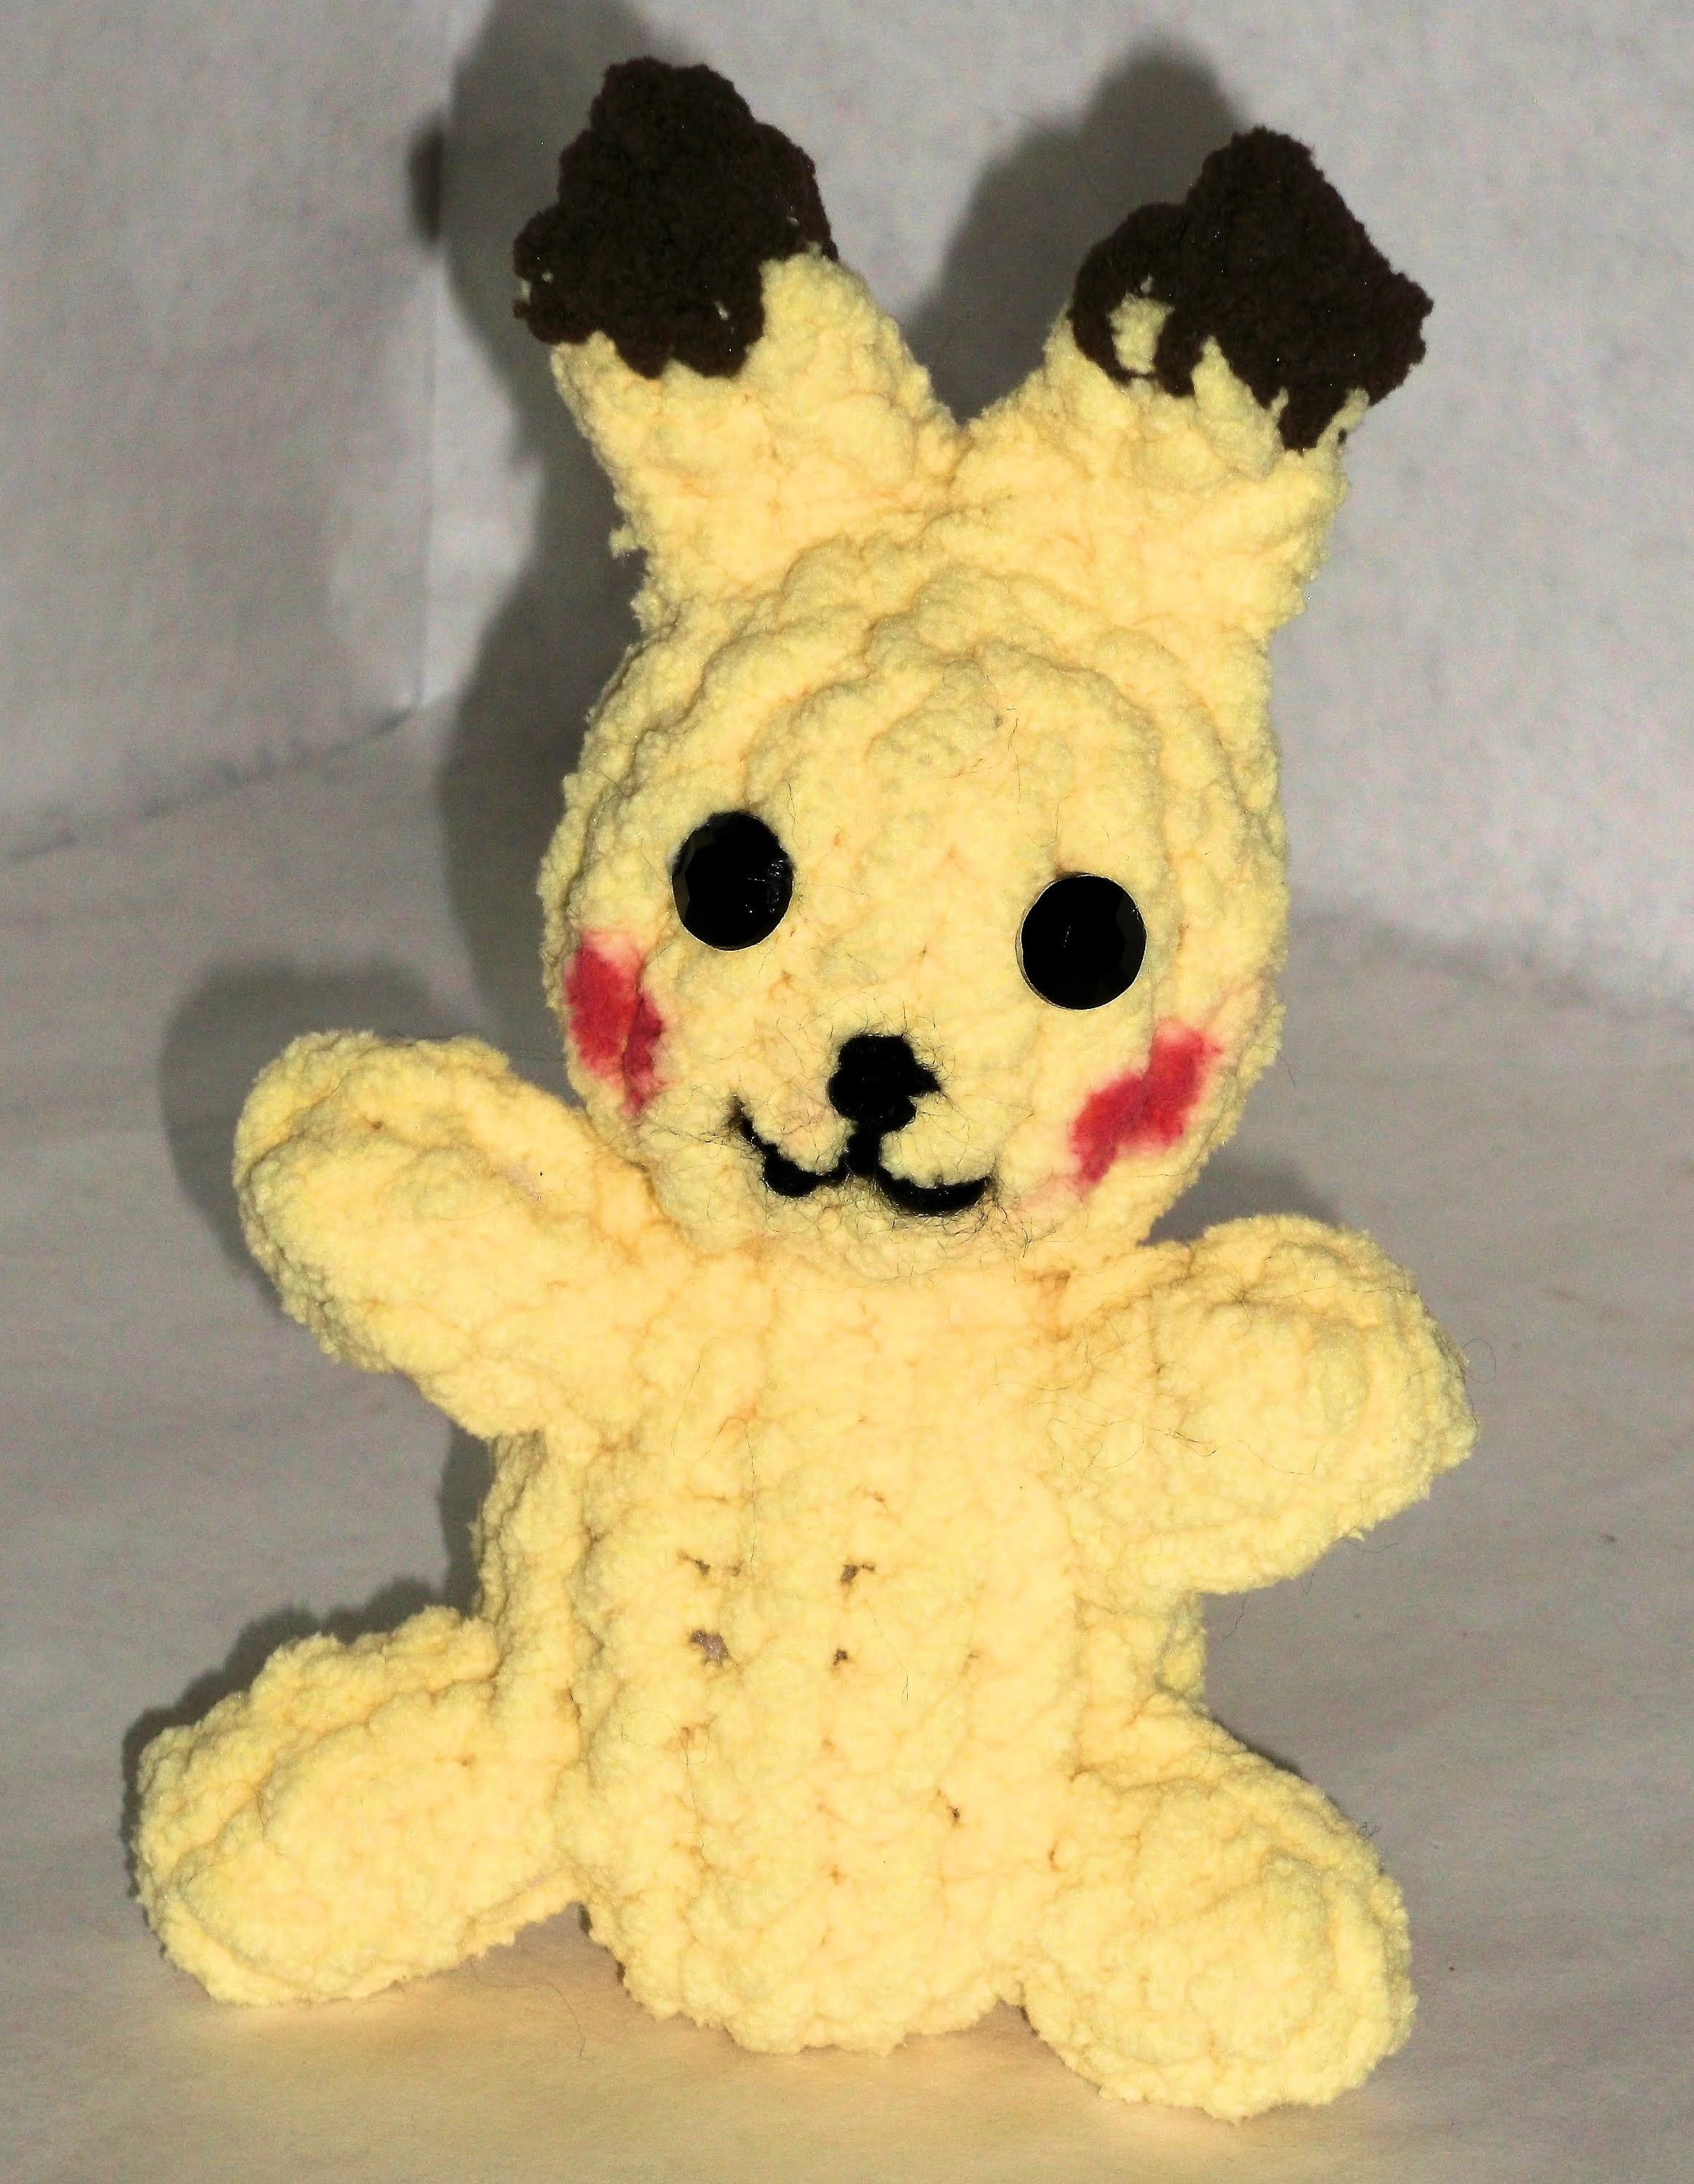 How to Loom Knit a Pikachu